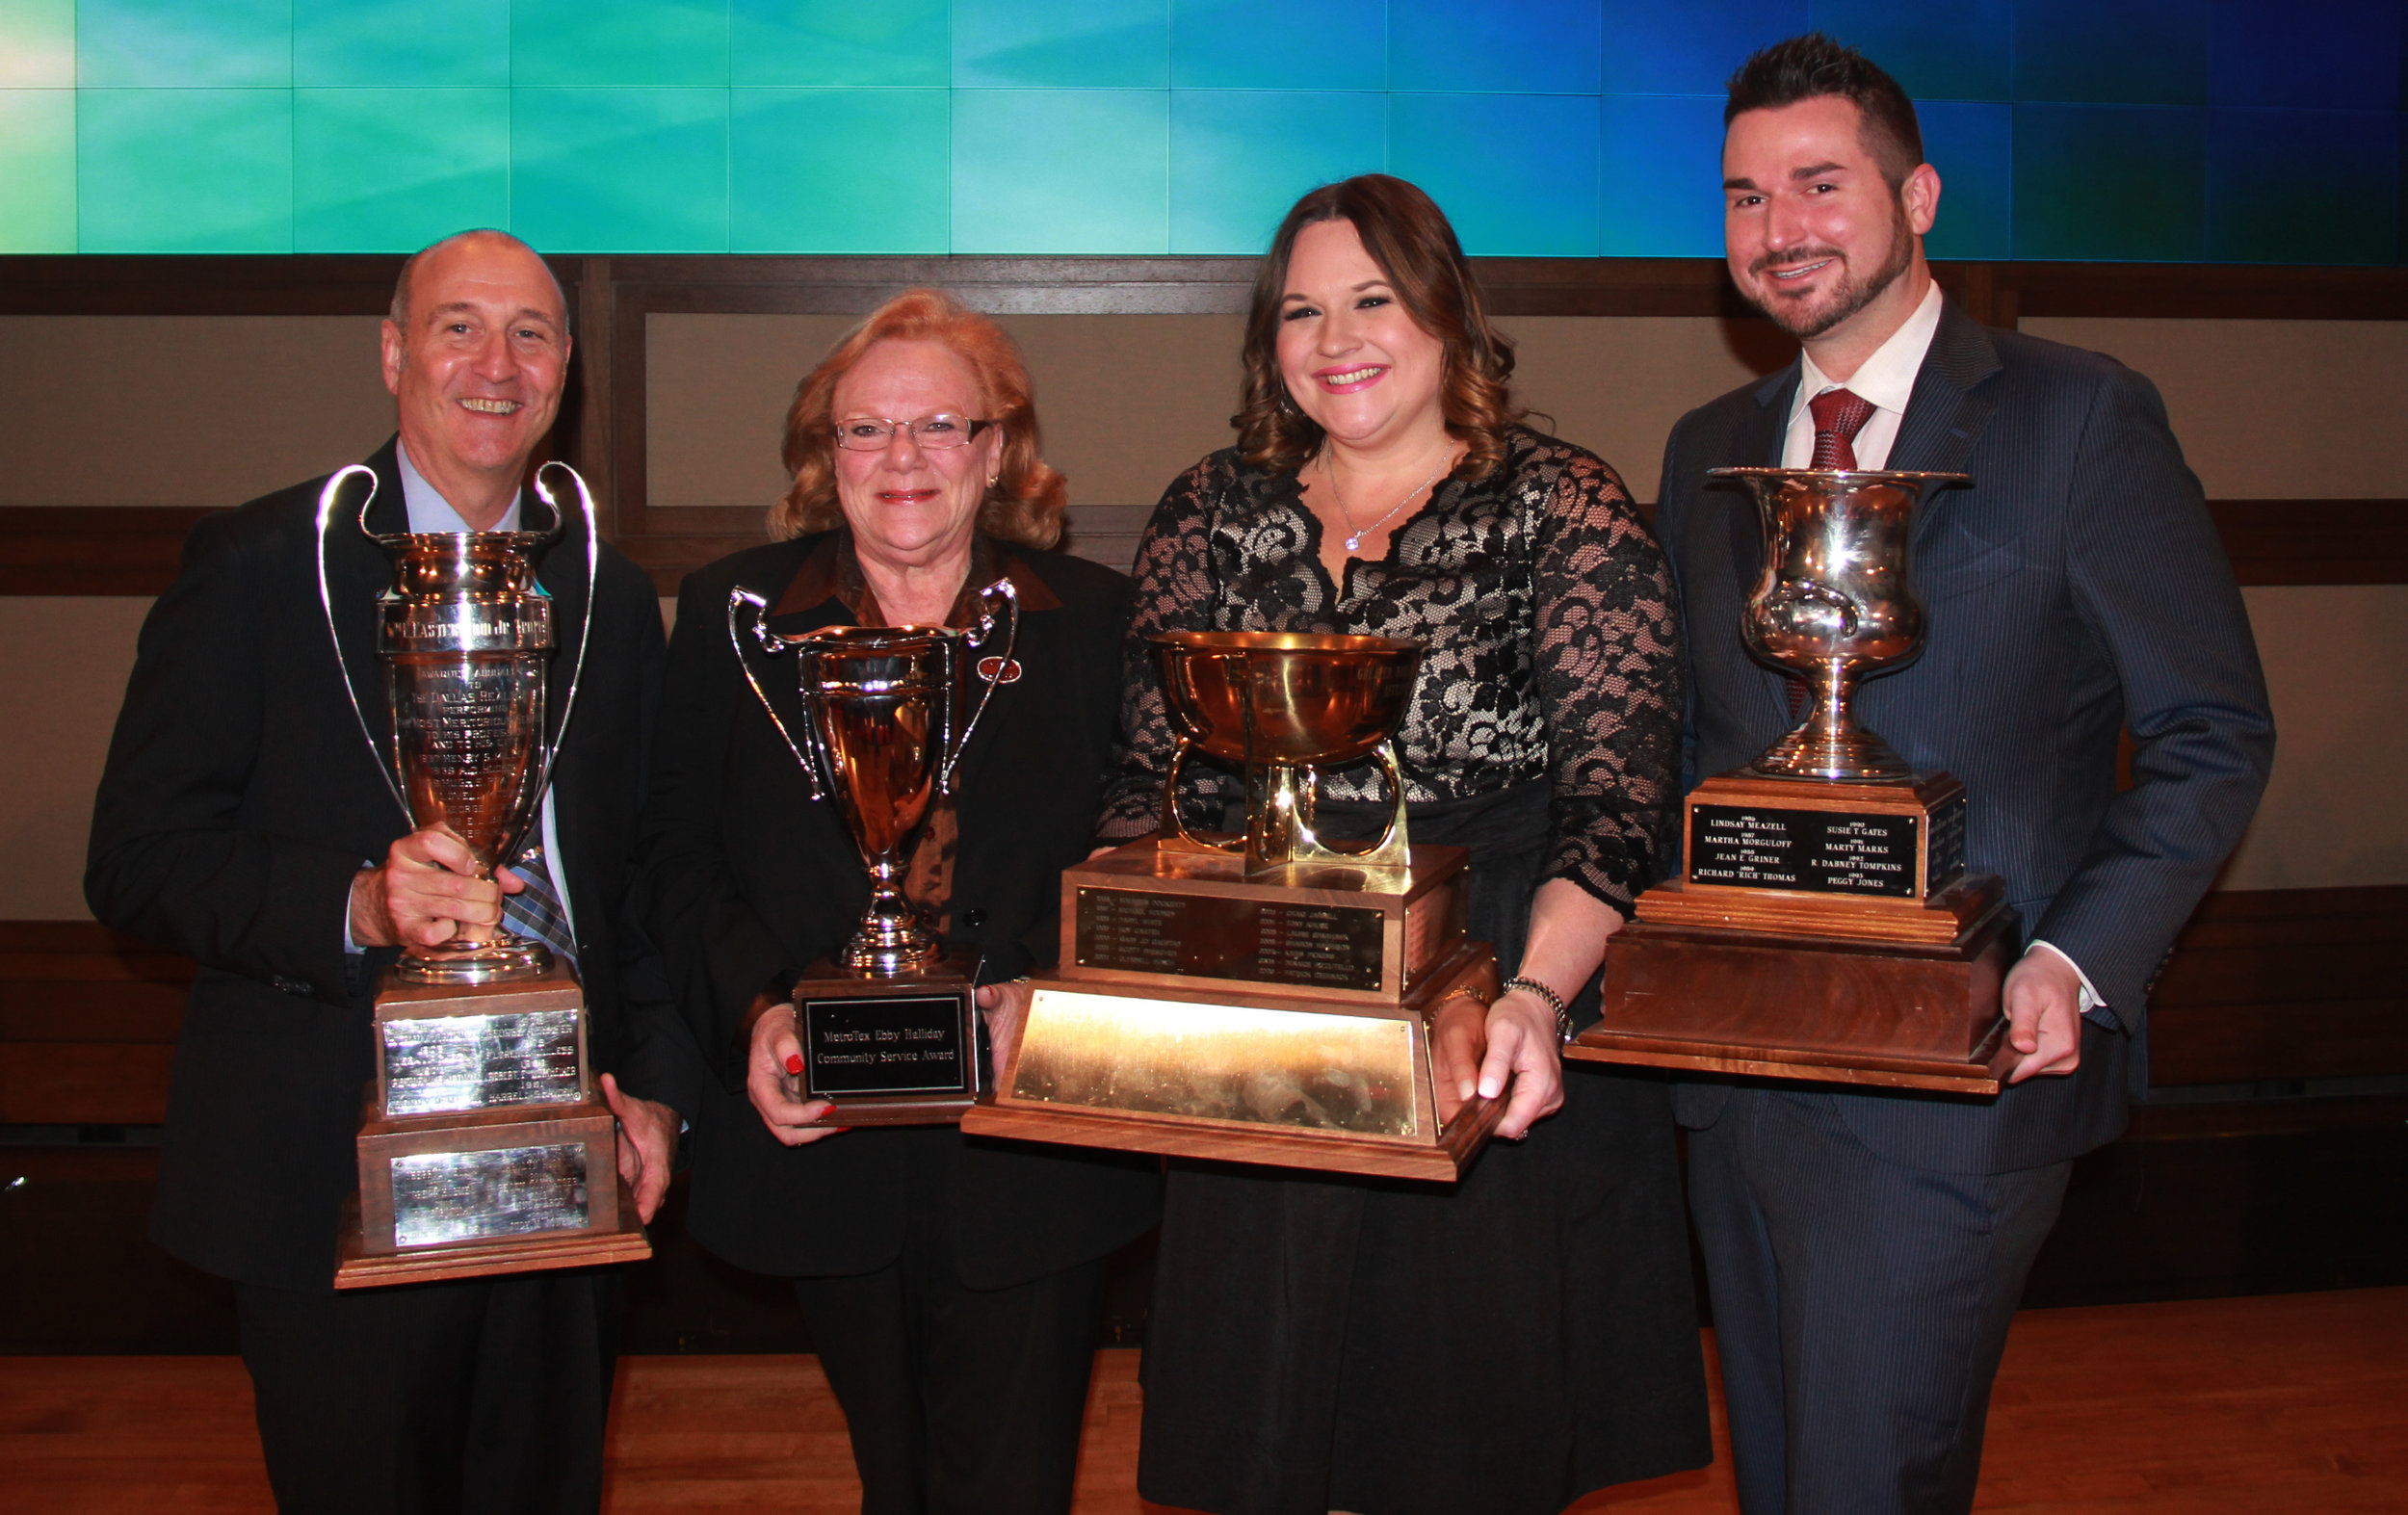 2016 MetroTex Award Winners (from l-r) Russell Berry, Easterwood Cup; Sandy Donsky, Ebby Halliday MetroTex Community Service Award; Kimberly Addison Kramer, Affiliate of the Year Award; Johnny Mowad, Lois Hair Bernays Award.